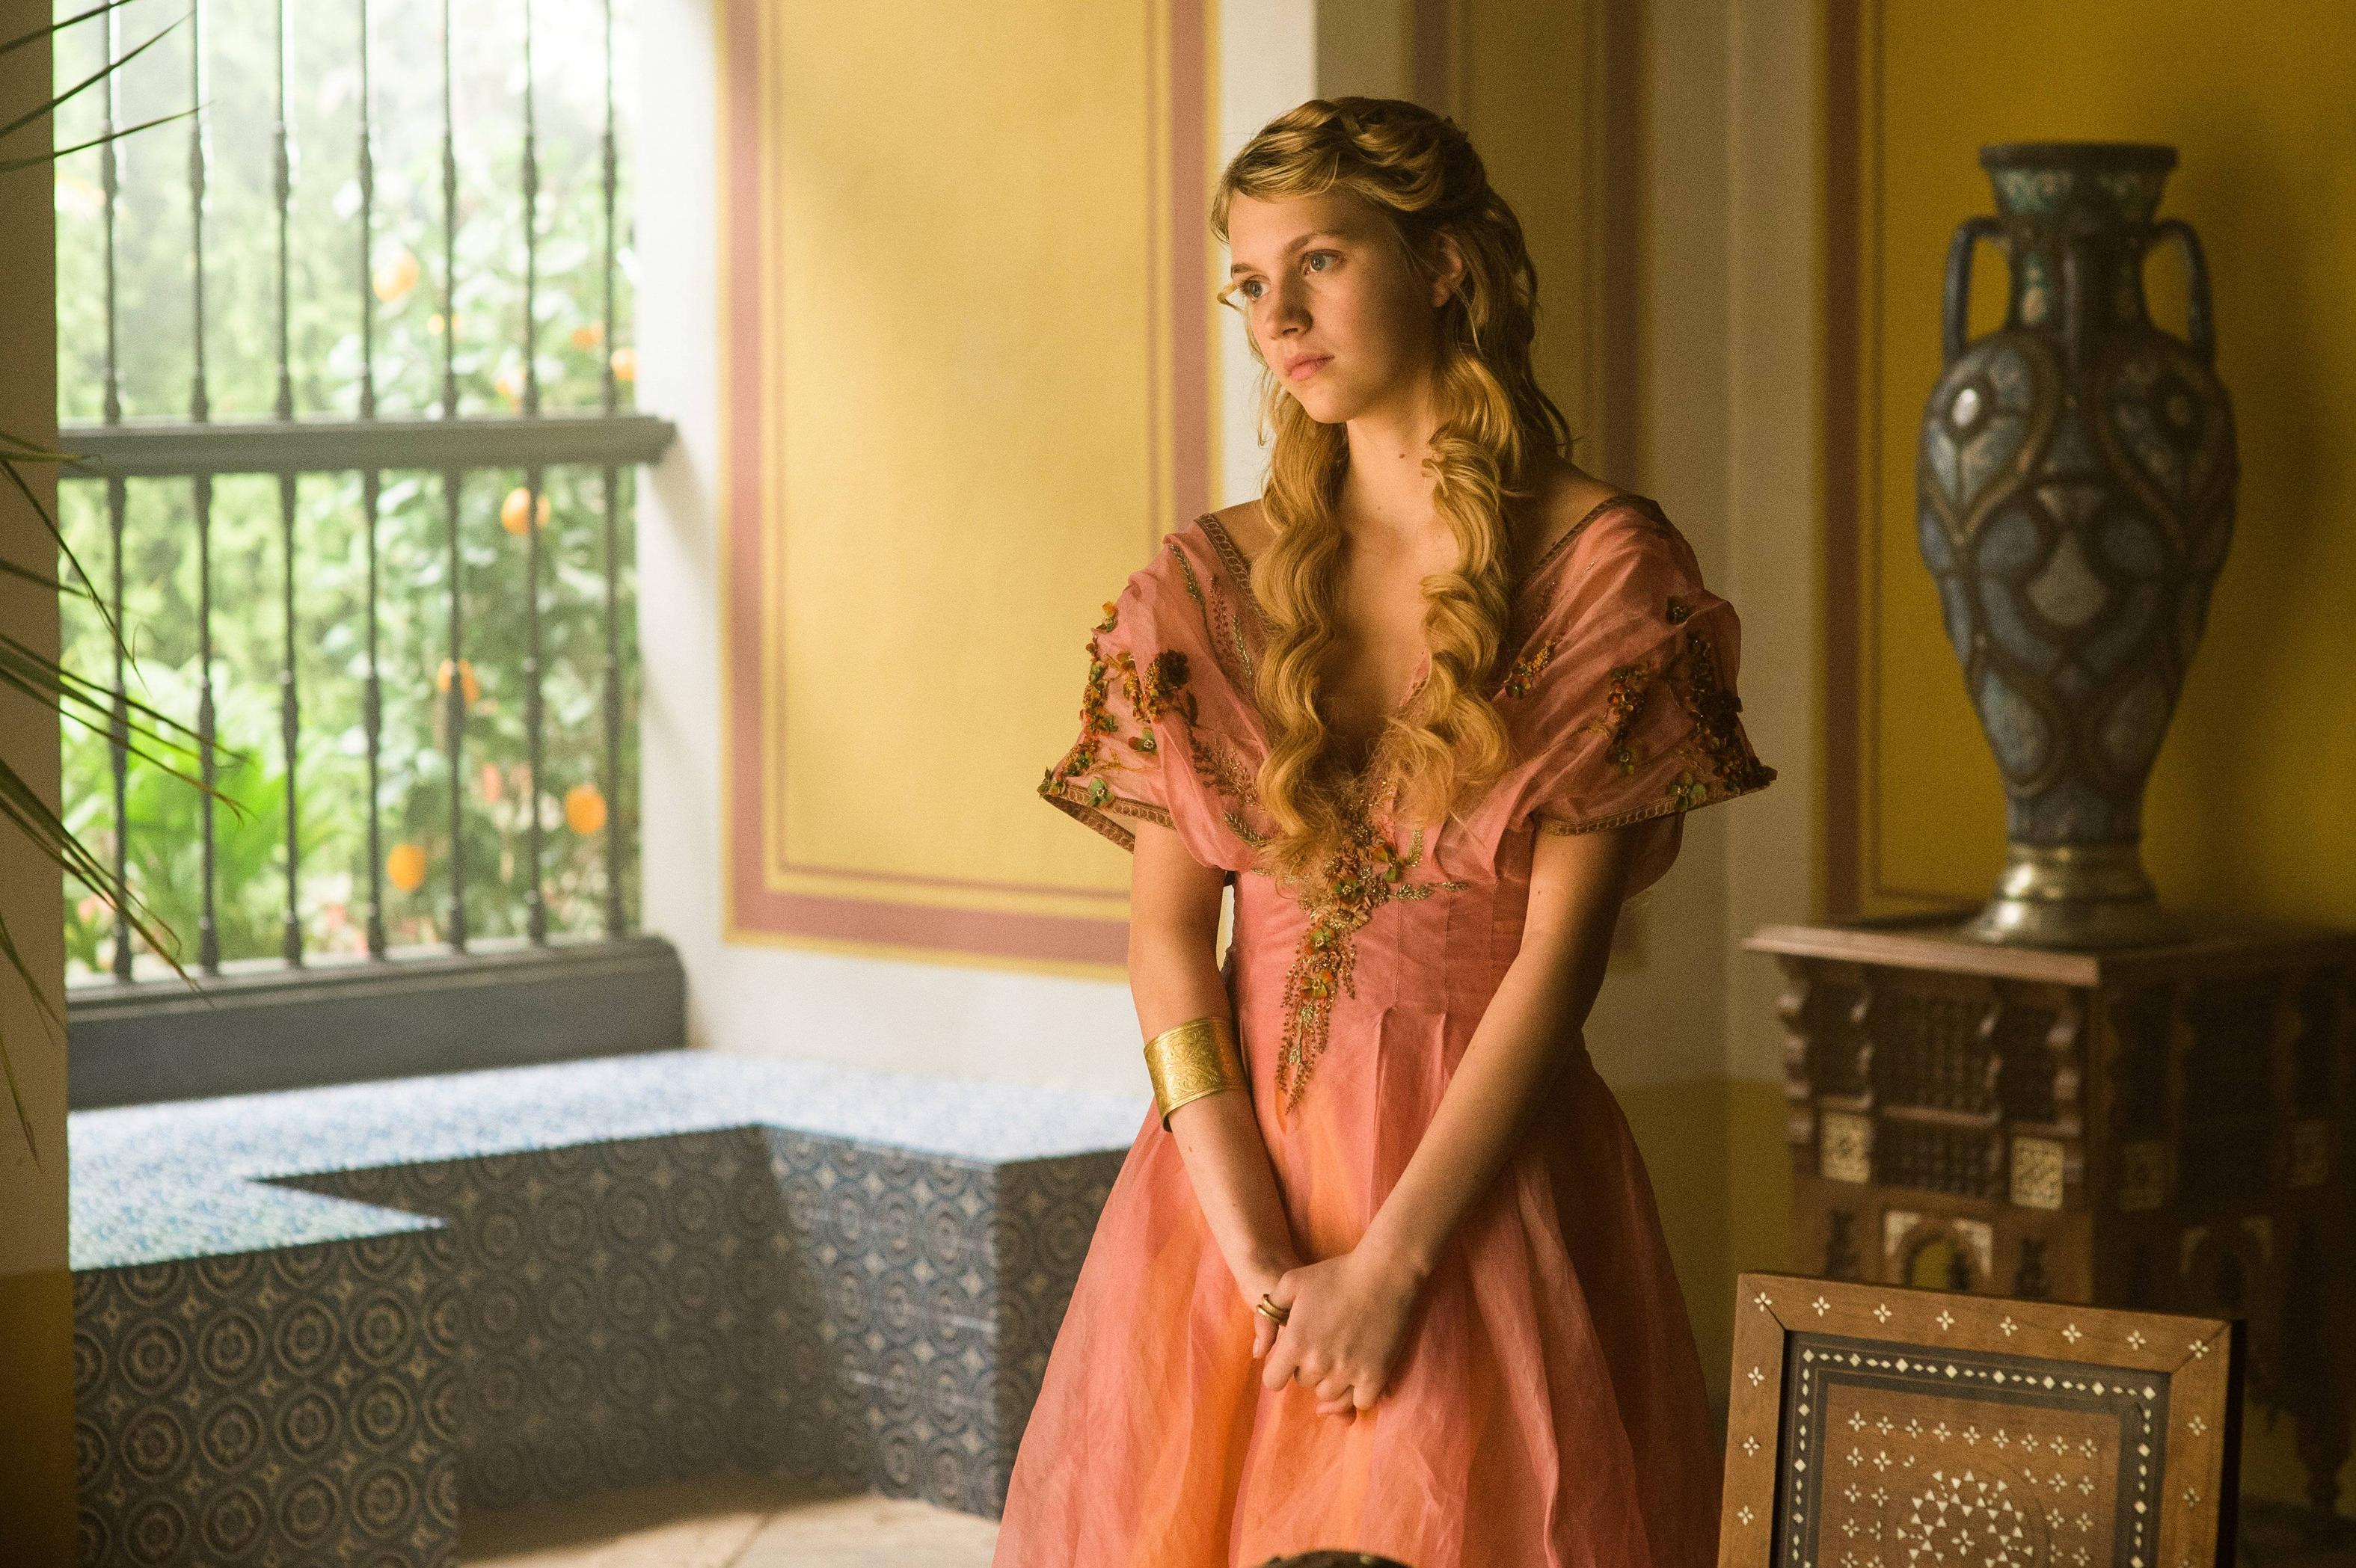 Game of Thrones: The Gift – Analysis